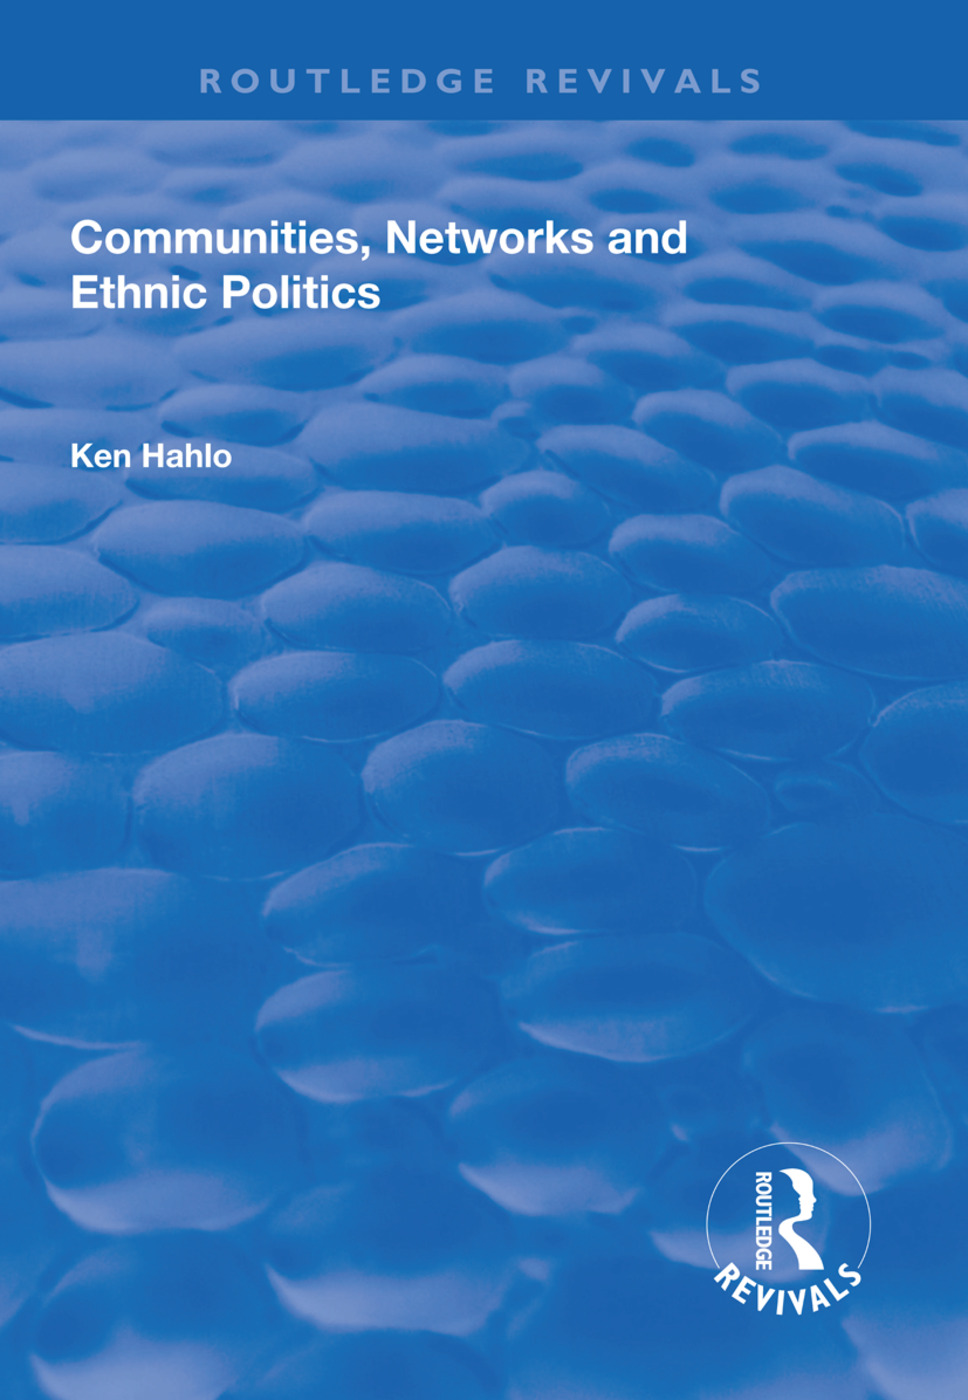 Communities, Networks and Ethnic Politics